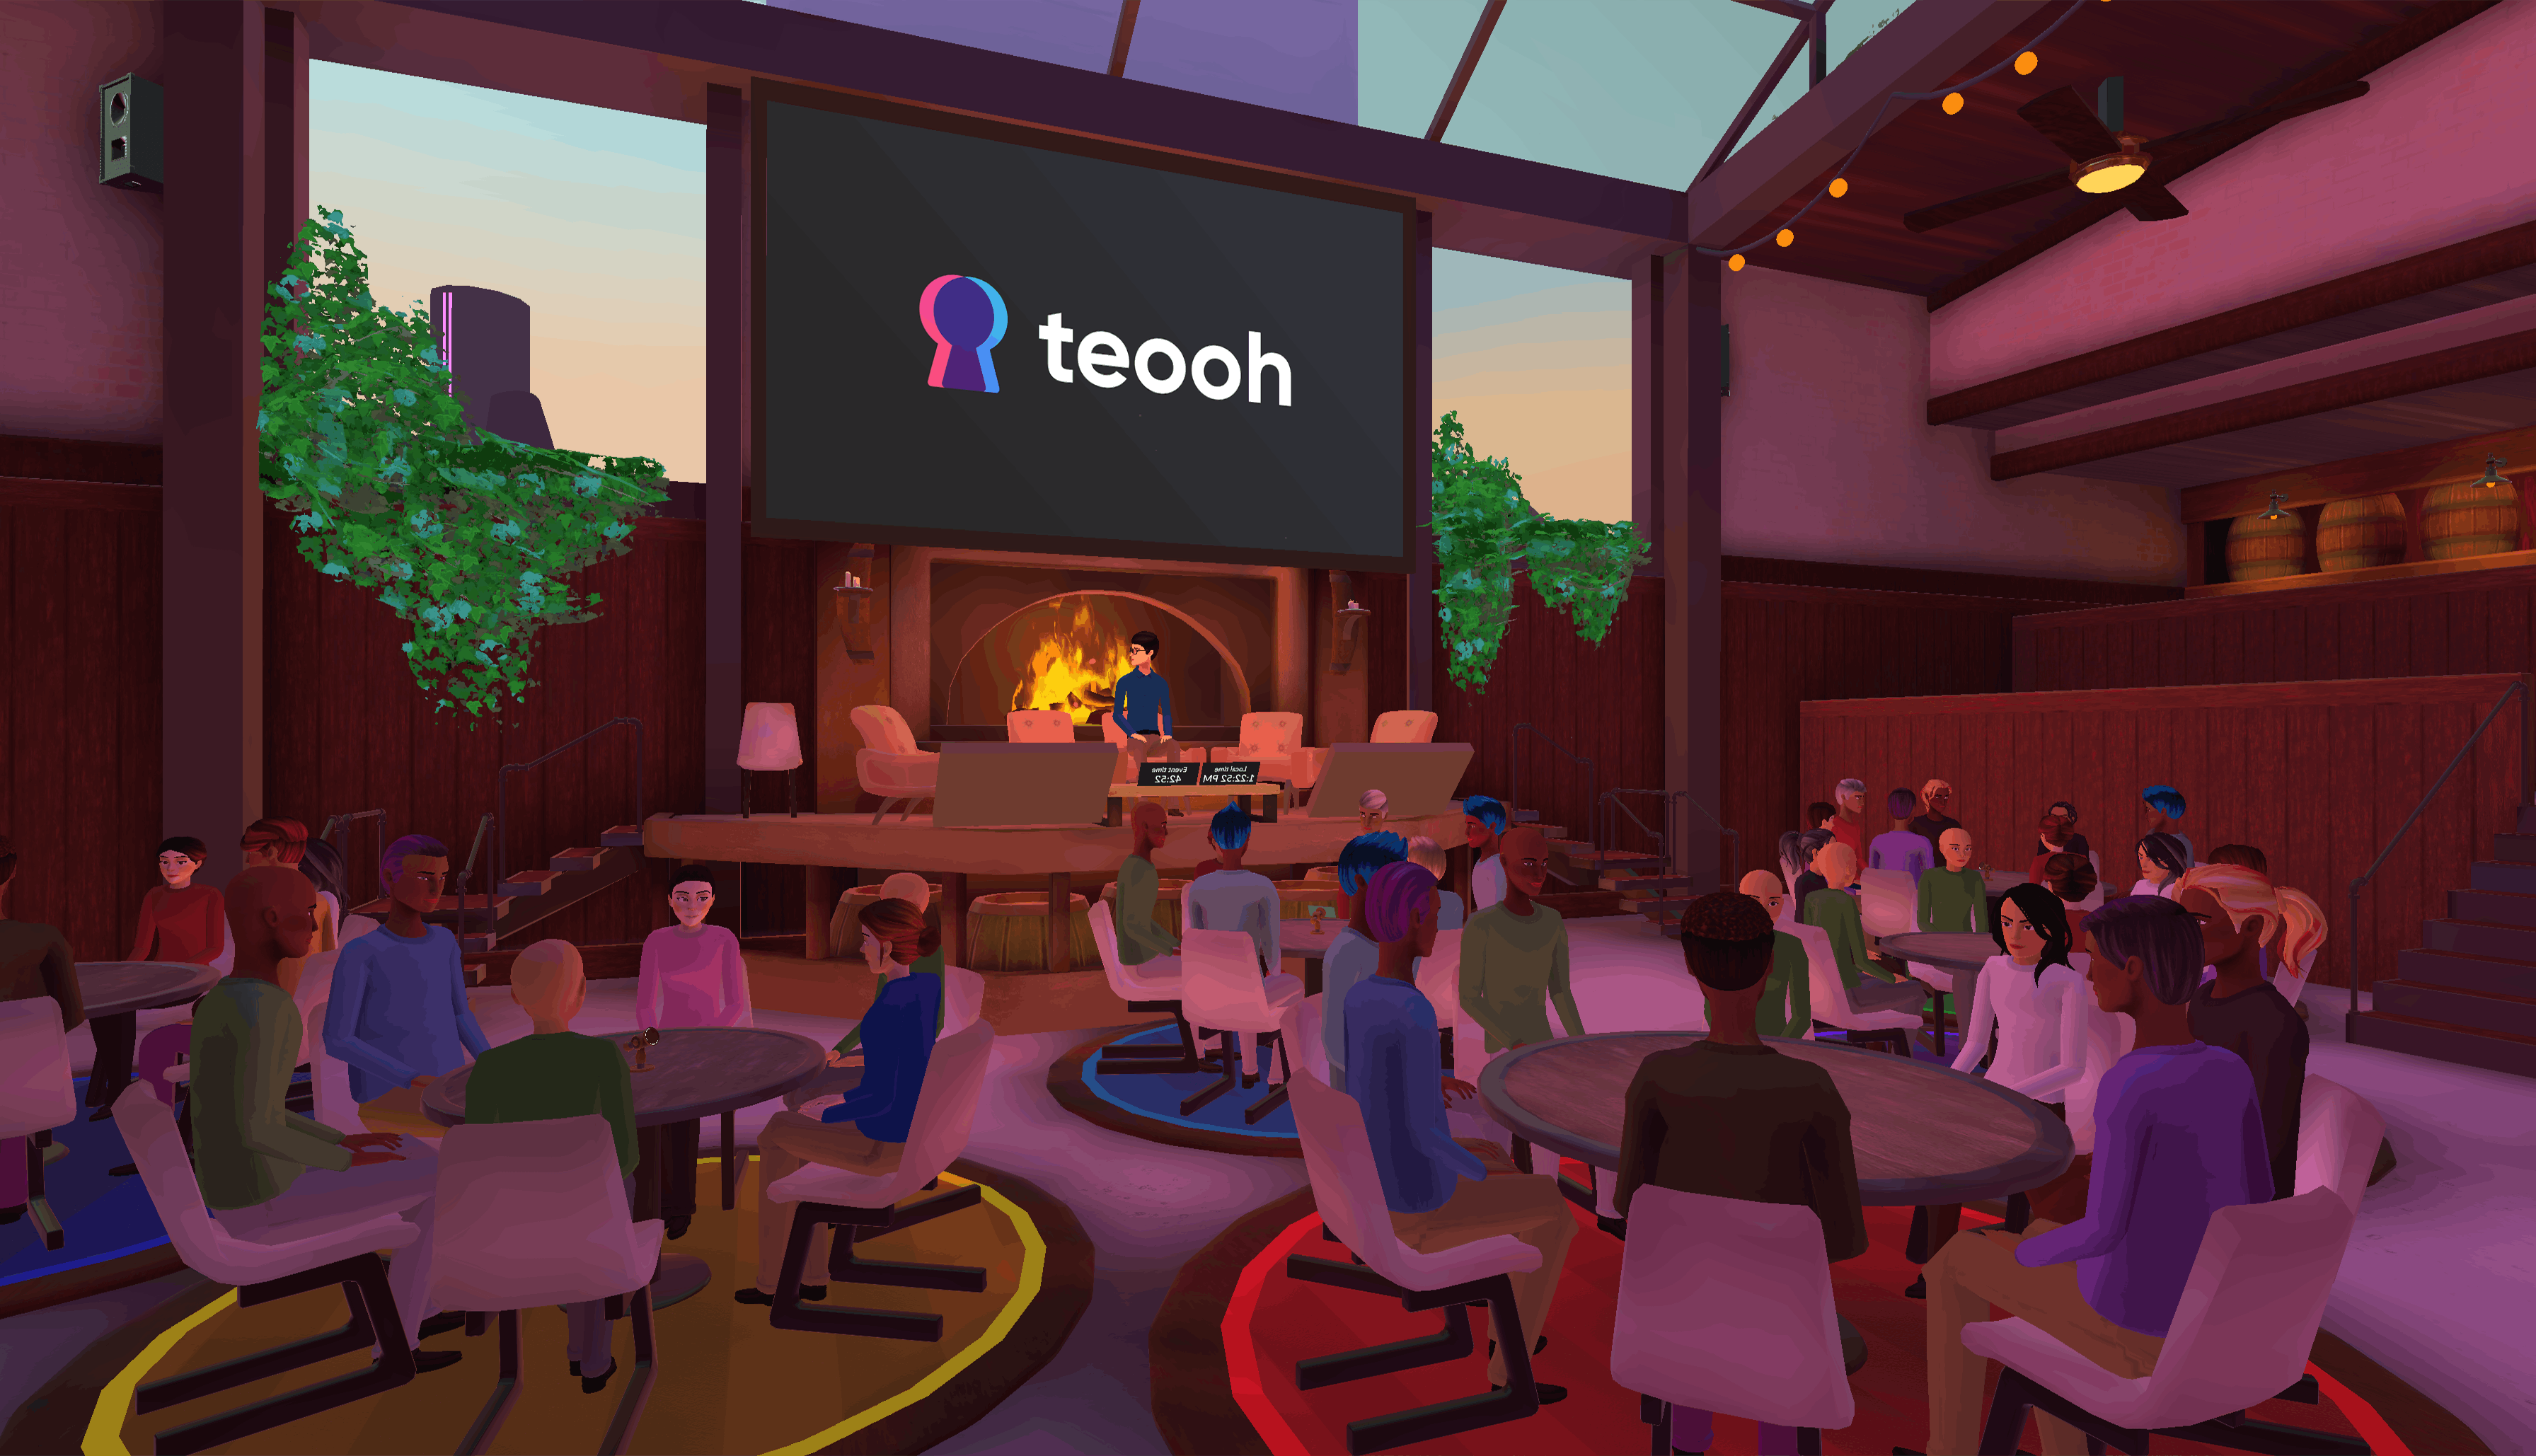 large-scale personal gathering in Teooh's avatar-based virtual reality platform